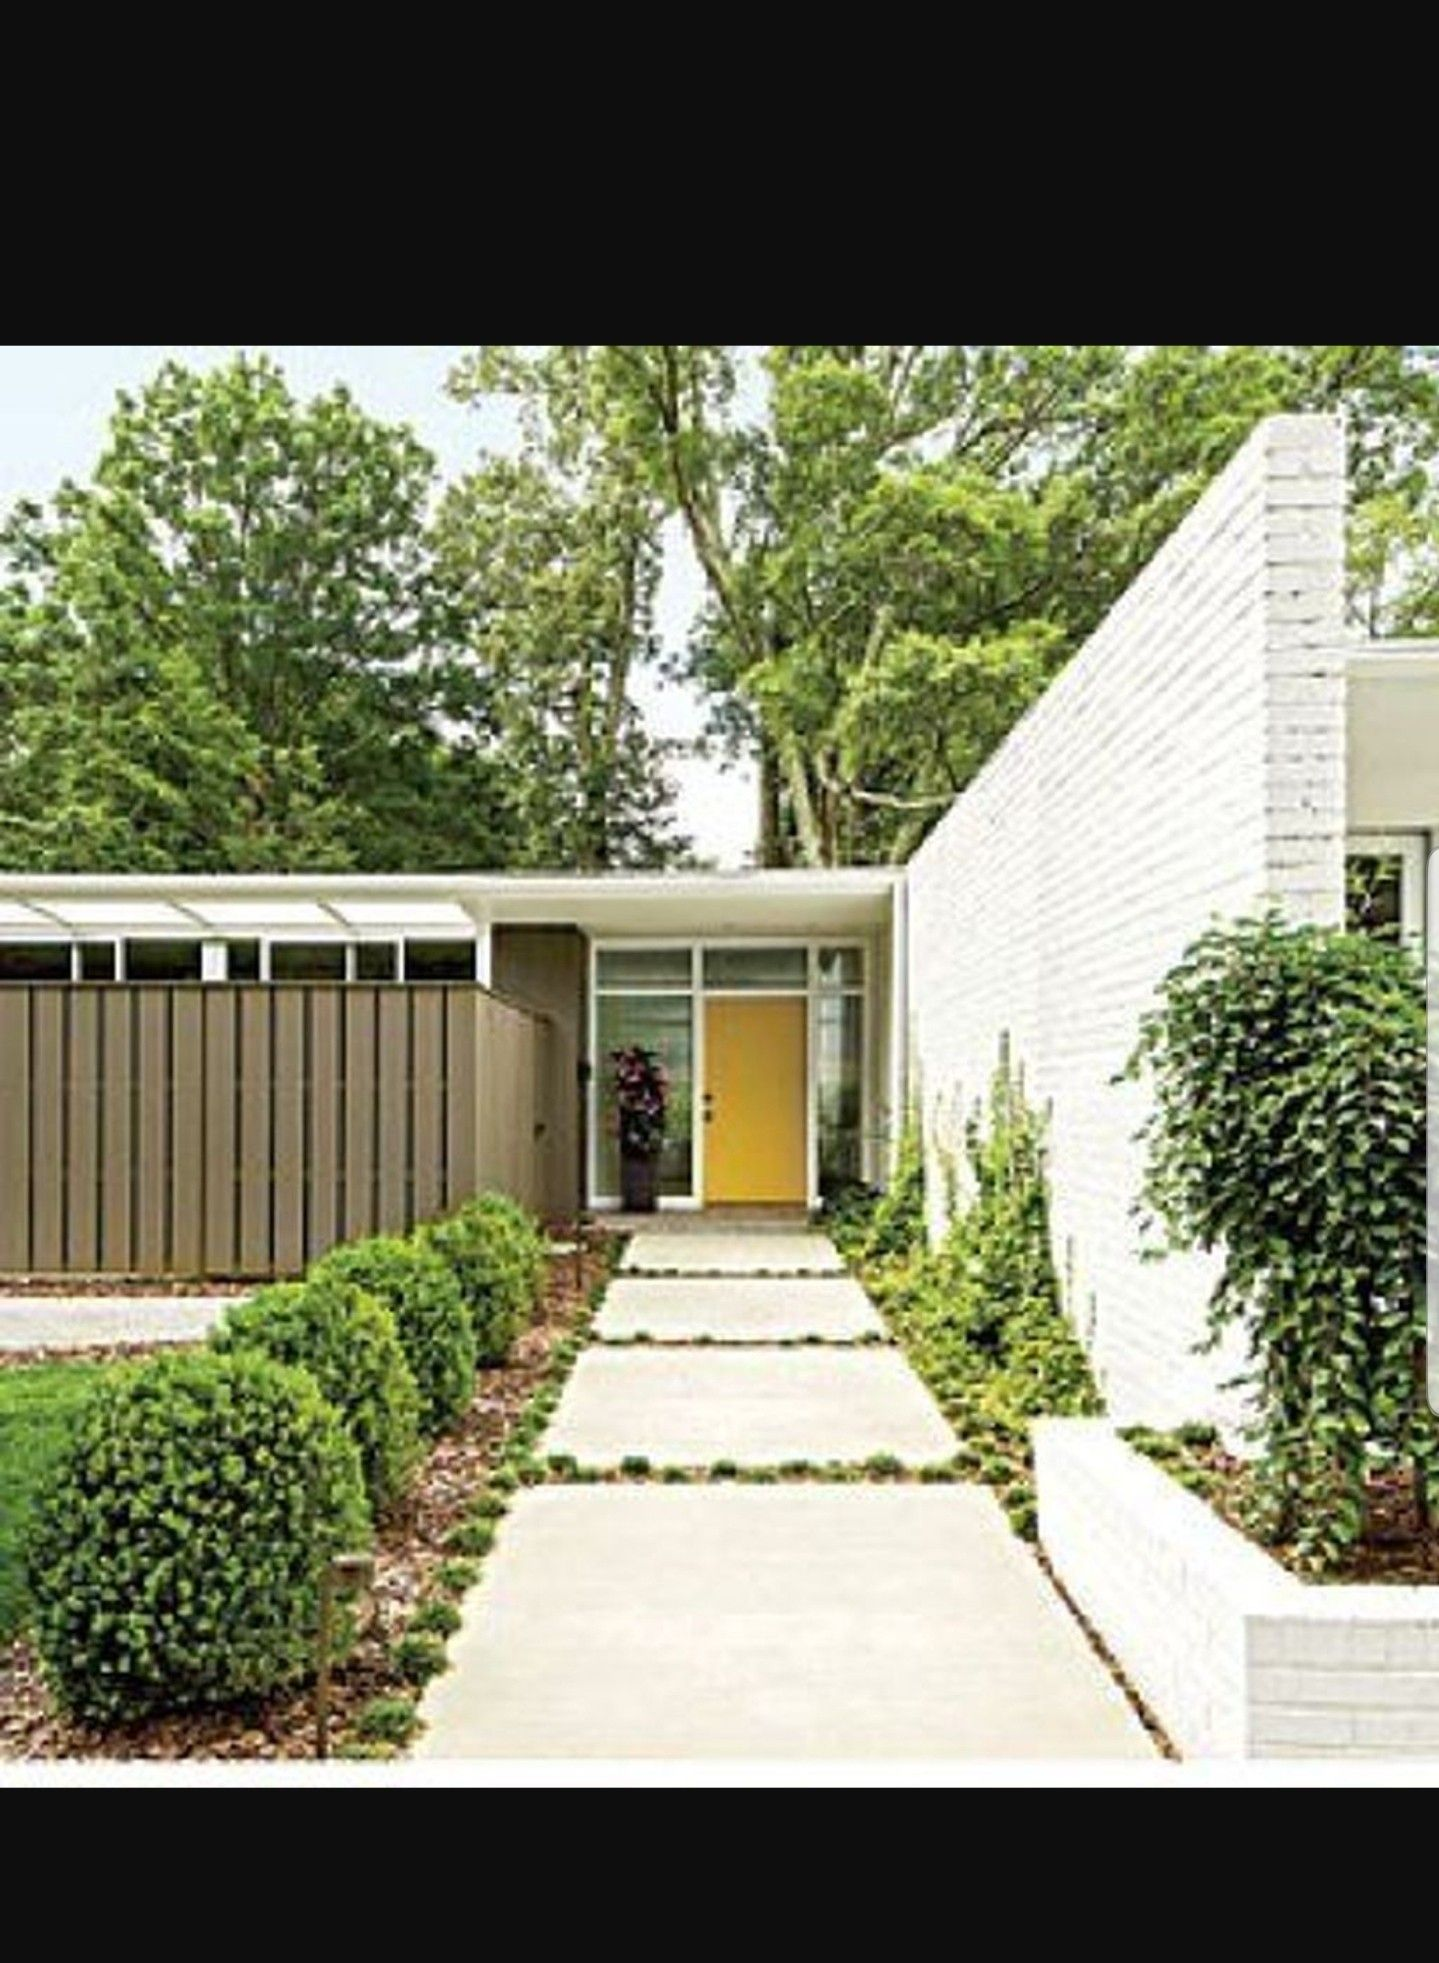 Contemporary Ranch House Remodel Front Entrance Ideas With Walkway Small Yard Green Grass: Tall, Wood Fence Provides Privacy To Large Windows Facing The Street. Yellow Entry Door And